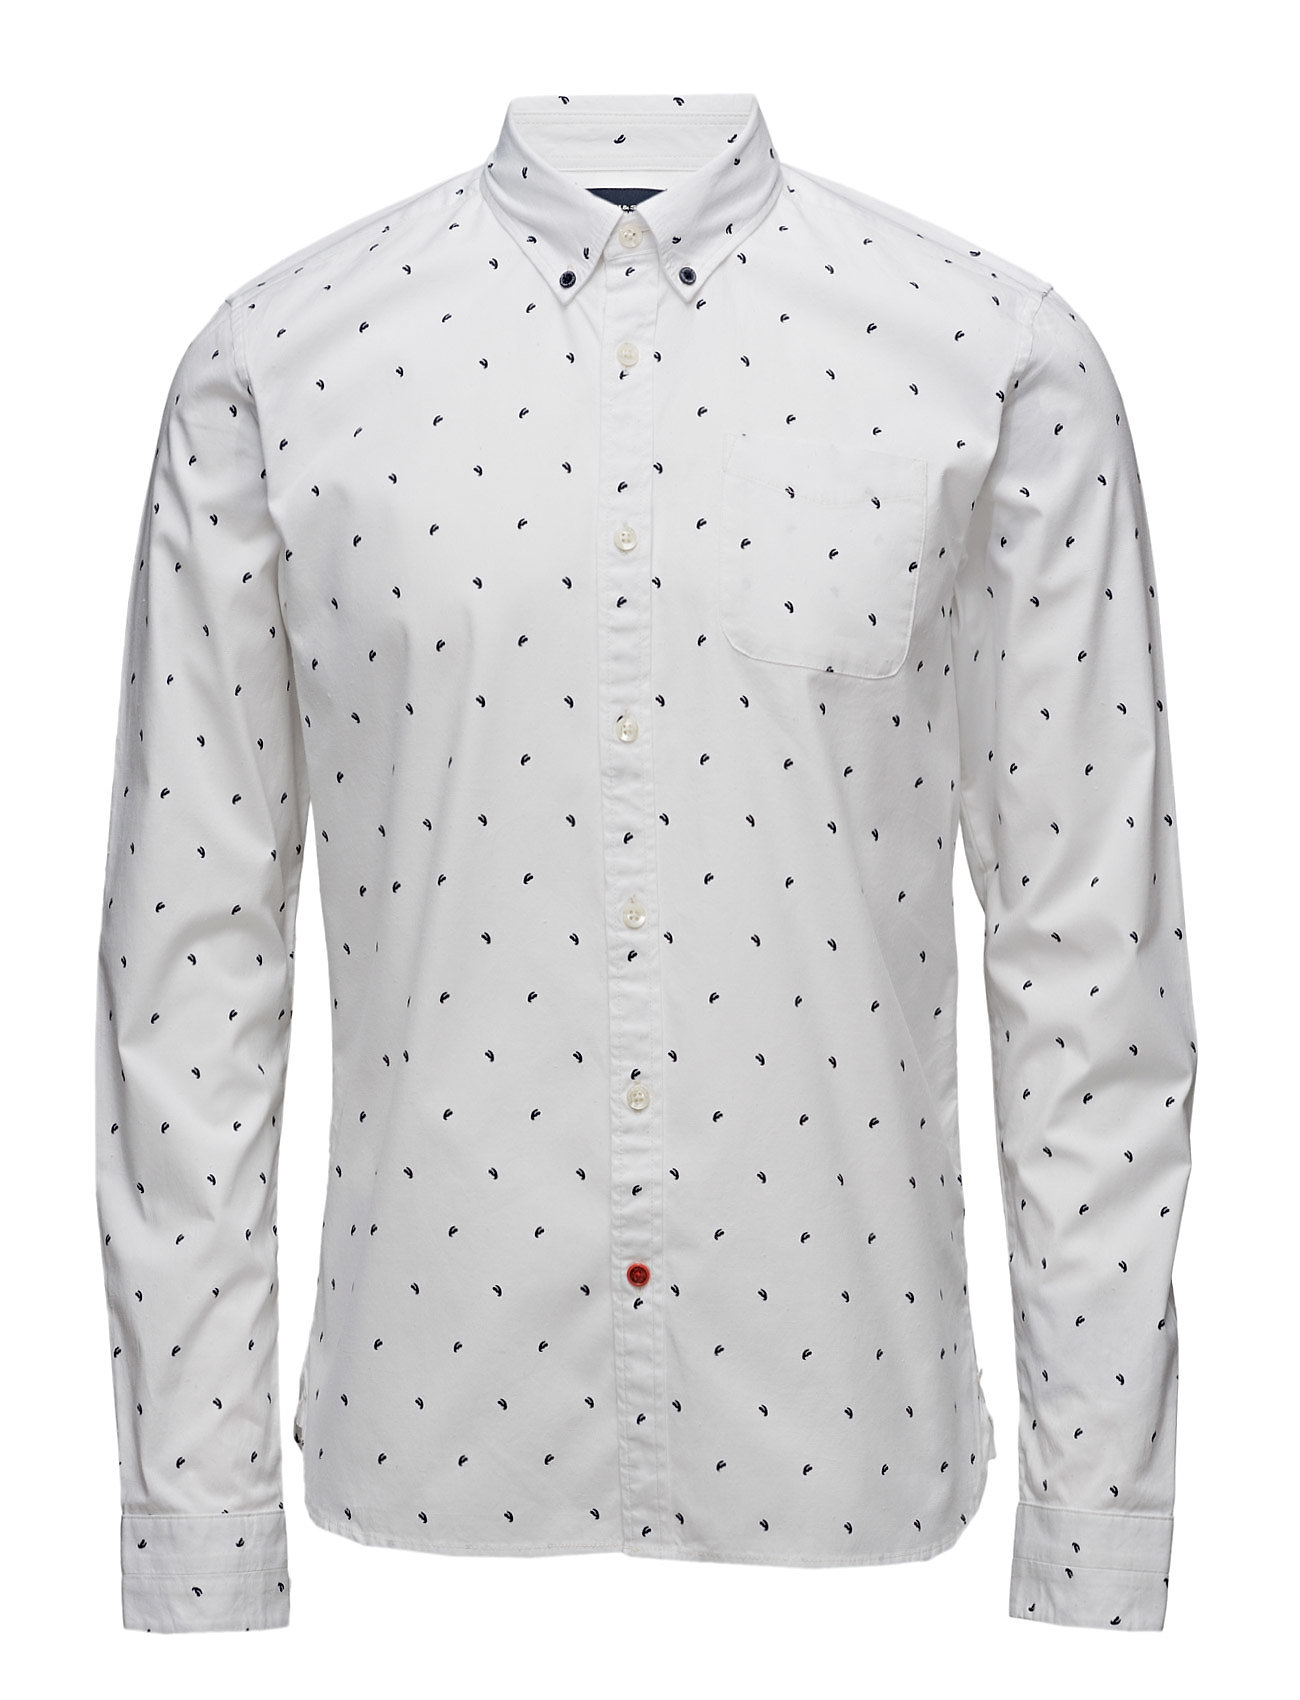 Ams Blauw Allover Print Slim Fit Shirt Scotch & Soda Casual sko til Mænd i Combo A